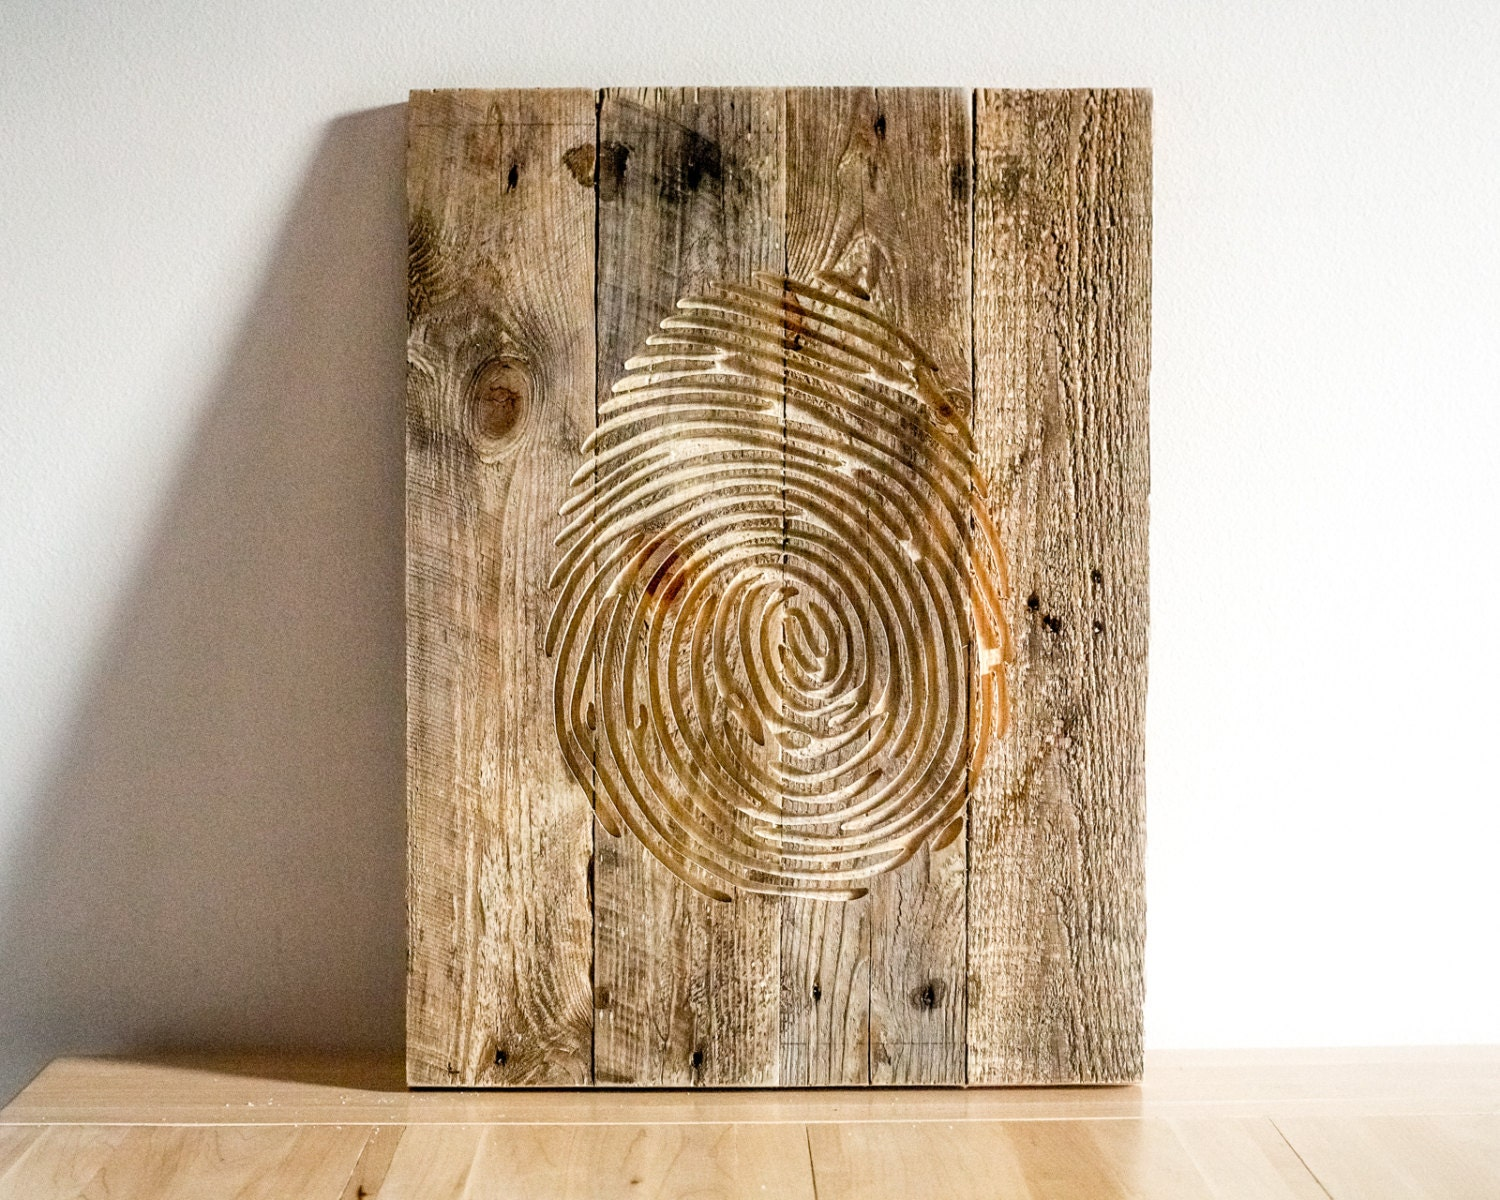 Carved Wood Wall Art Decor Inspiration Fingerprint Wall Art  Carved Wooden Wall Hanging For A 2018